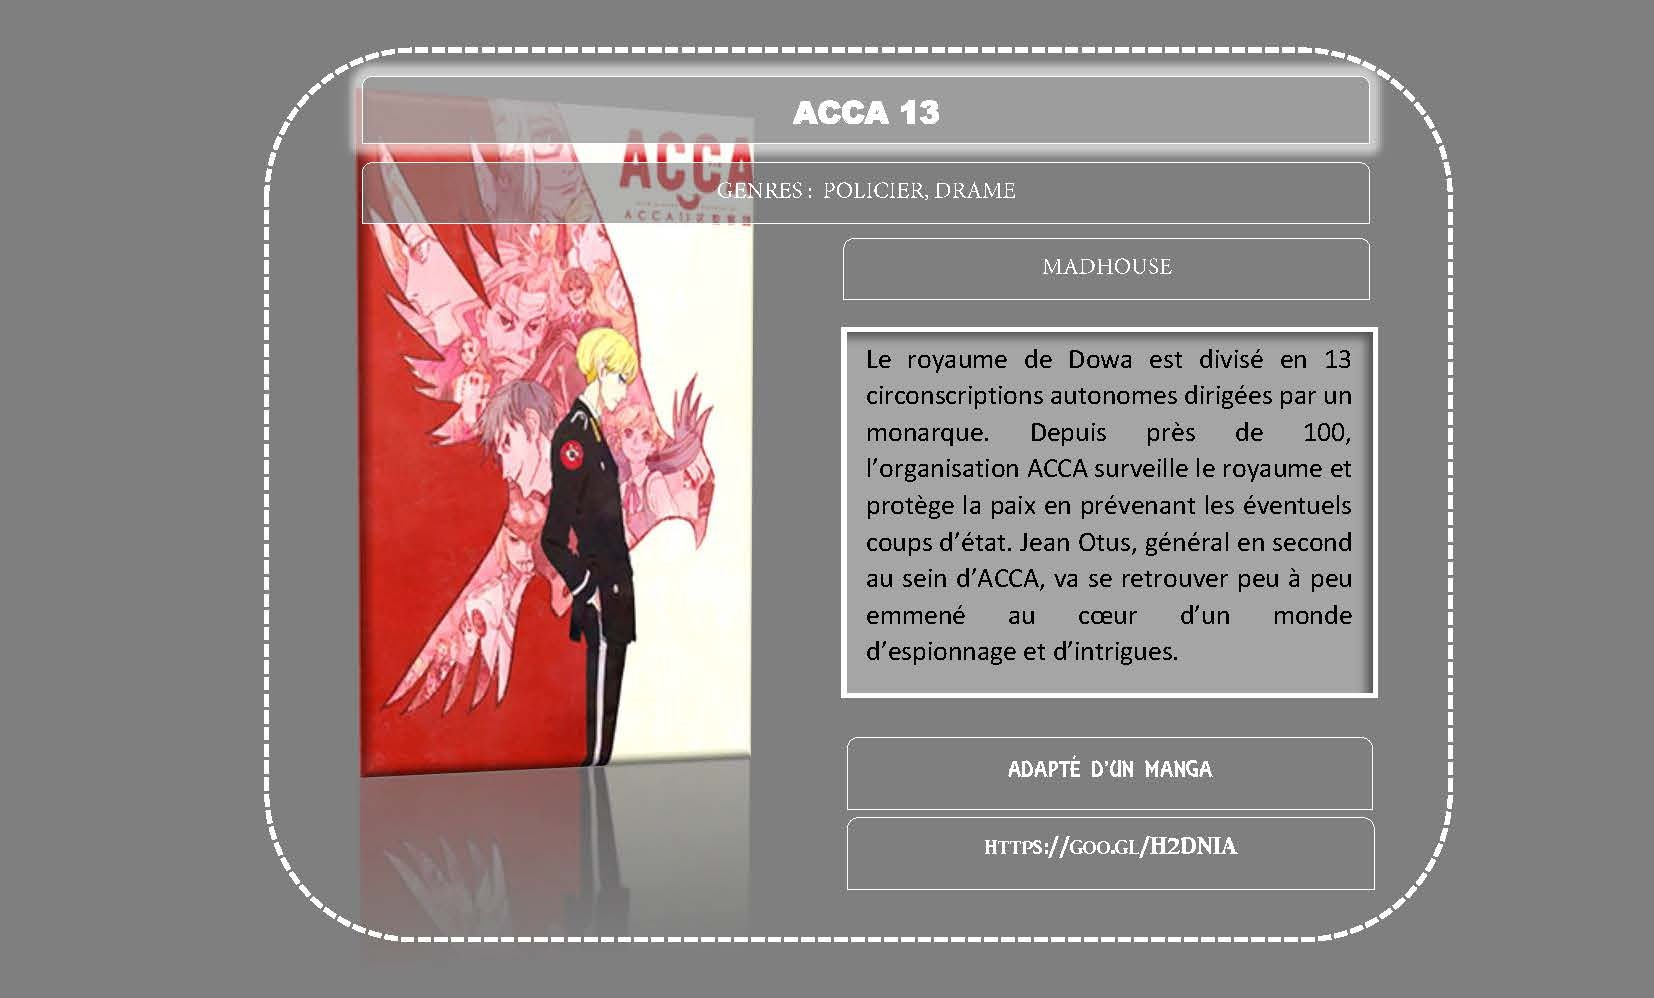 ACCA13